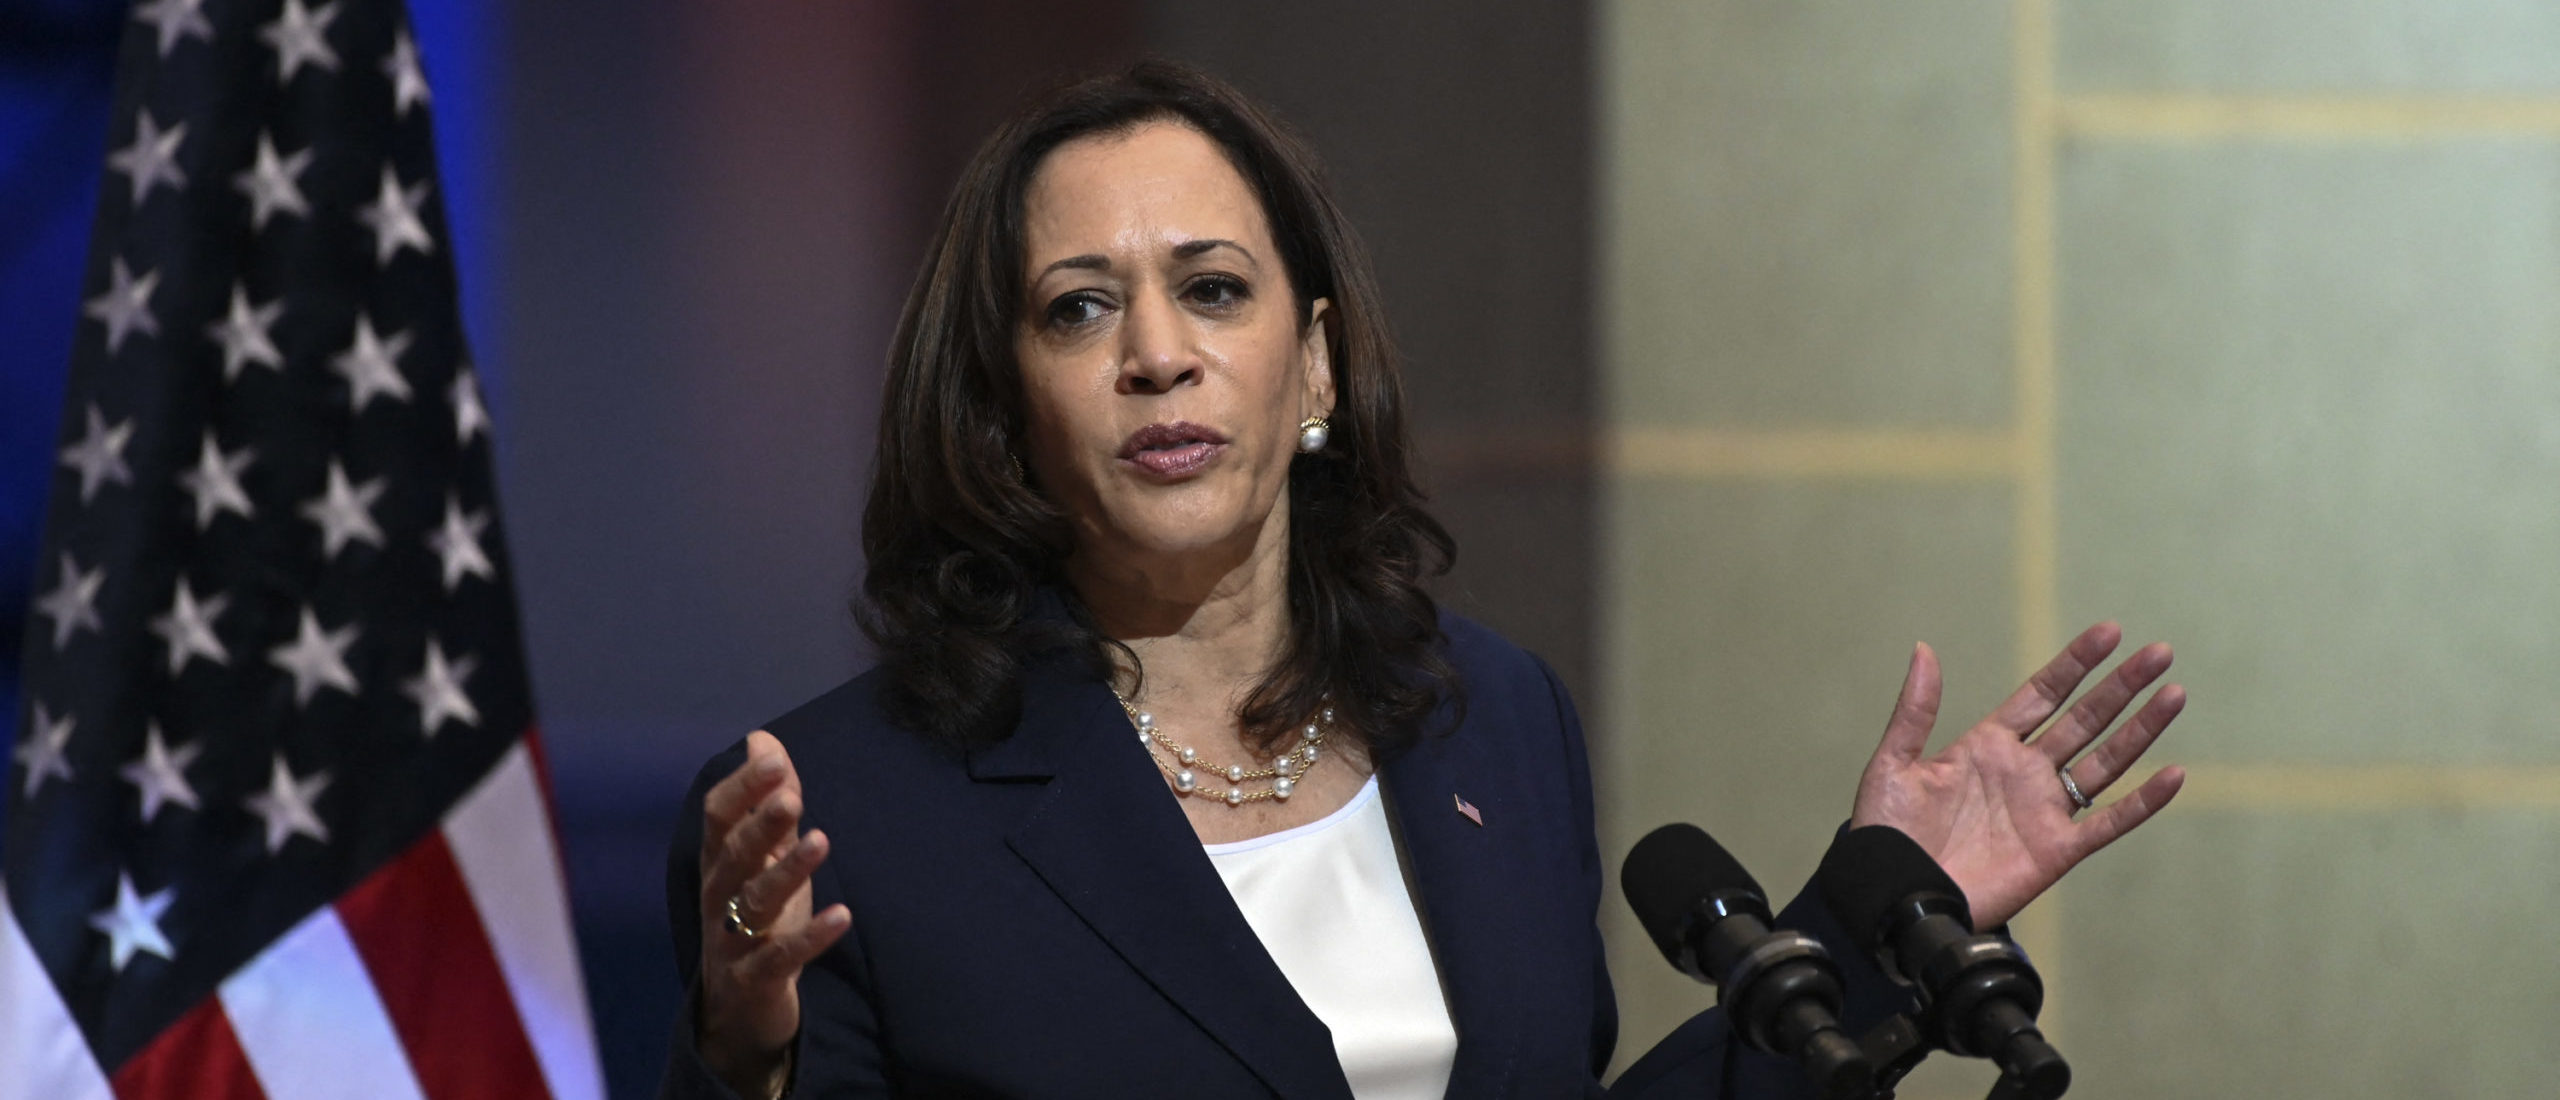 """US Vice-President Kamala Harris speaks during a joint press conference with Guatemalan President Alejandro Giammattei (out of frame) at the Culture Palace in Guatemala City on June 7, 2021. - Harris arrived in Guatemala Sunday, bringing a message of """"hope"""" to a region hammered by Covid-19 and which is the source of most of the undocumented migrants seeking entry to the United States. (Photo by Johan ORDONEZ / AFP) (Photo by JOHAN ORDONEZ/AFP via Getty Images)"""